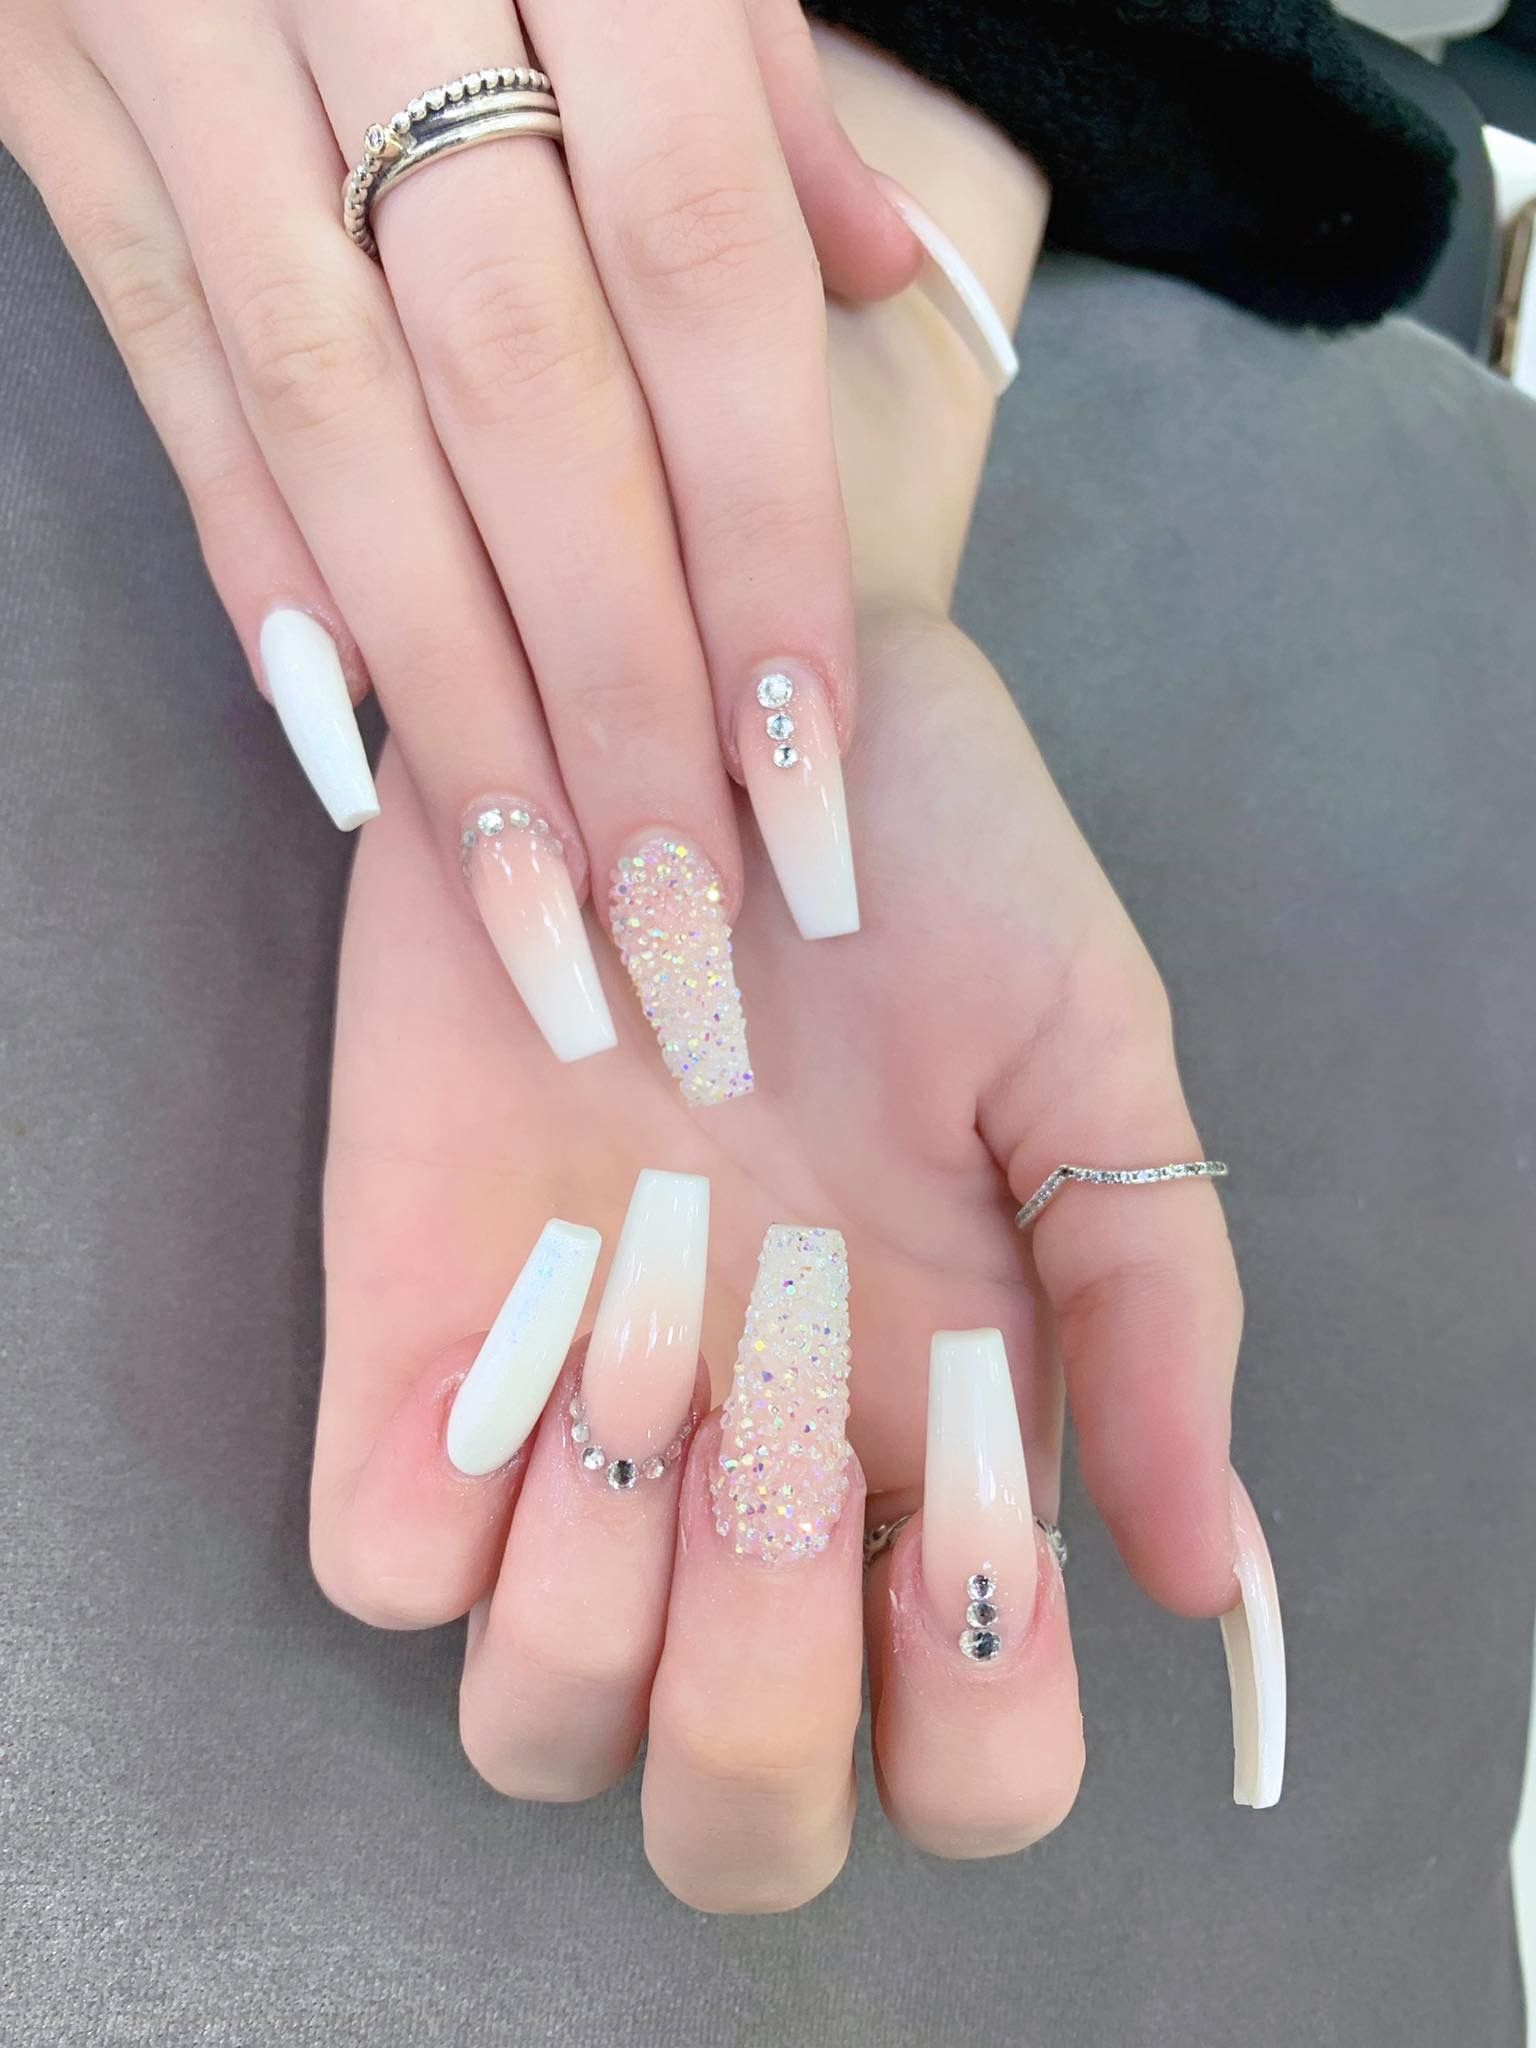 Pin By Rachel Torres On Best Long Nails Design Ideas In 2020 Full Set Gel Nails Long Nail Designs Long Lasting Nails